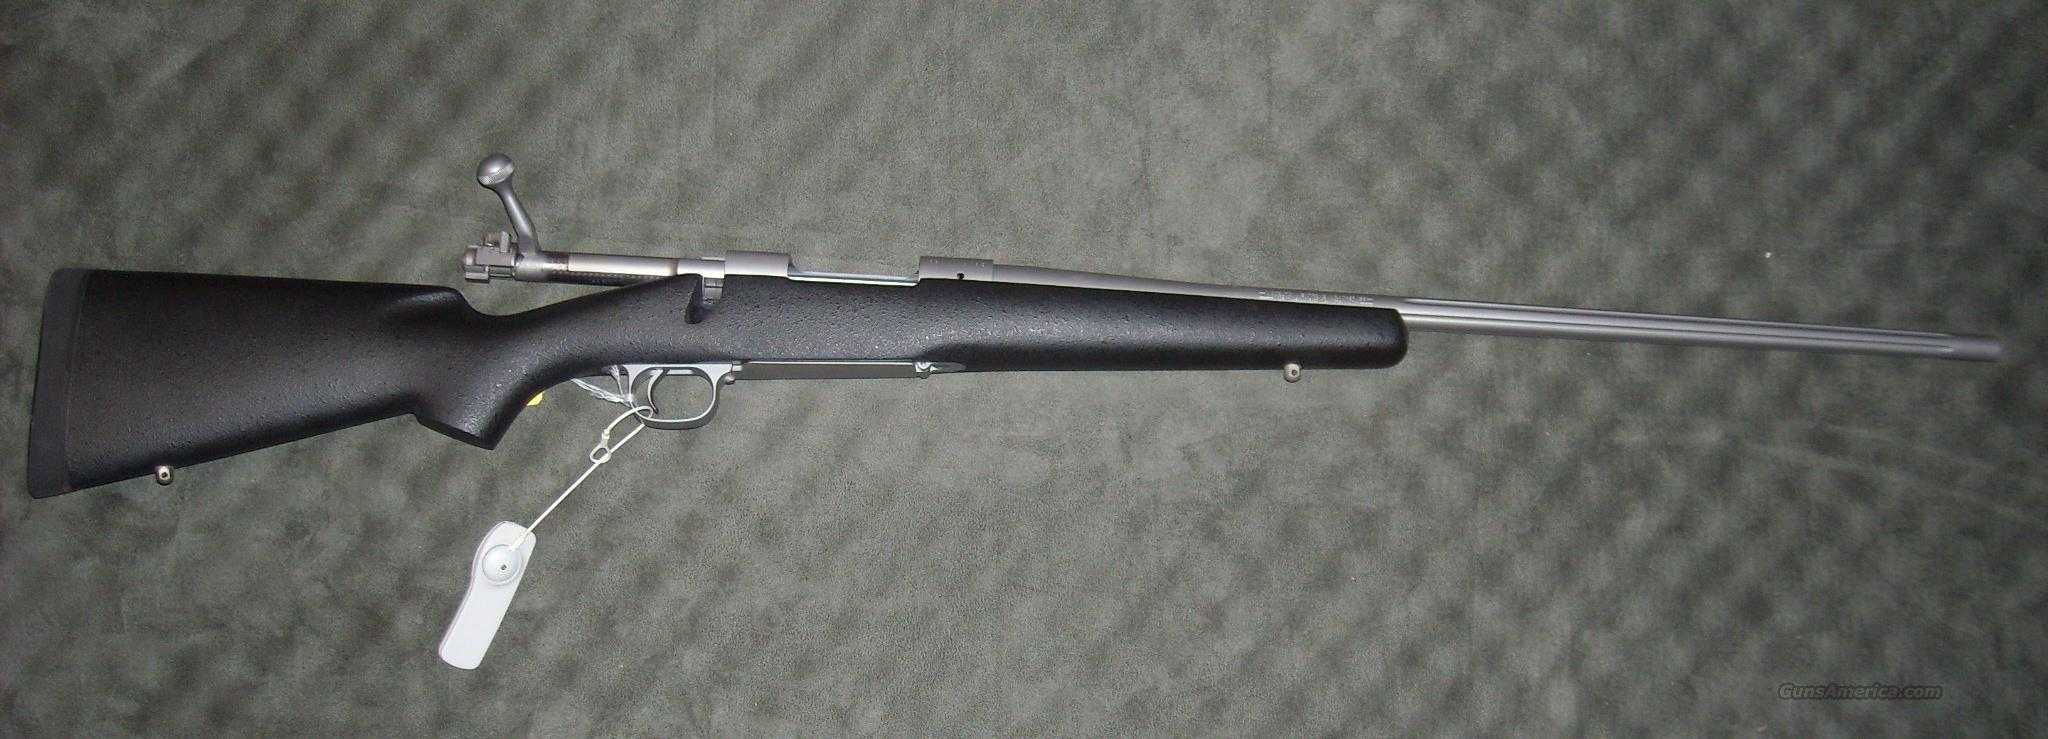 Model 70 extreme weather 270 WSM s/s  Guns > Rifles > Winchester Rifles - Modern Bolt/Auto/Single > Model 70 > Post-64